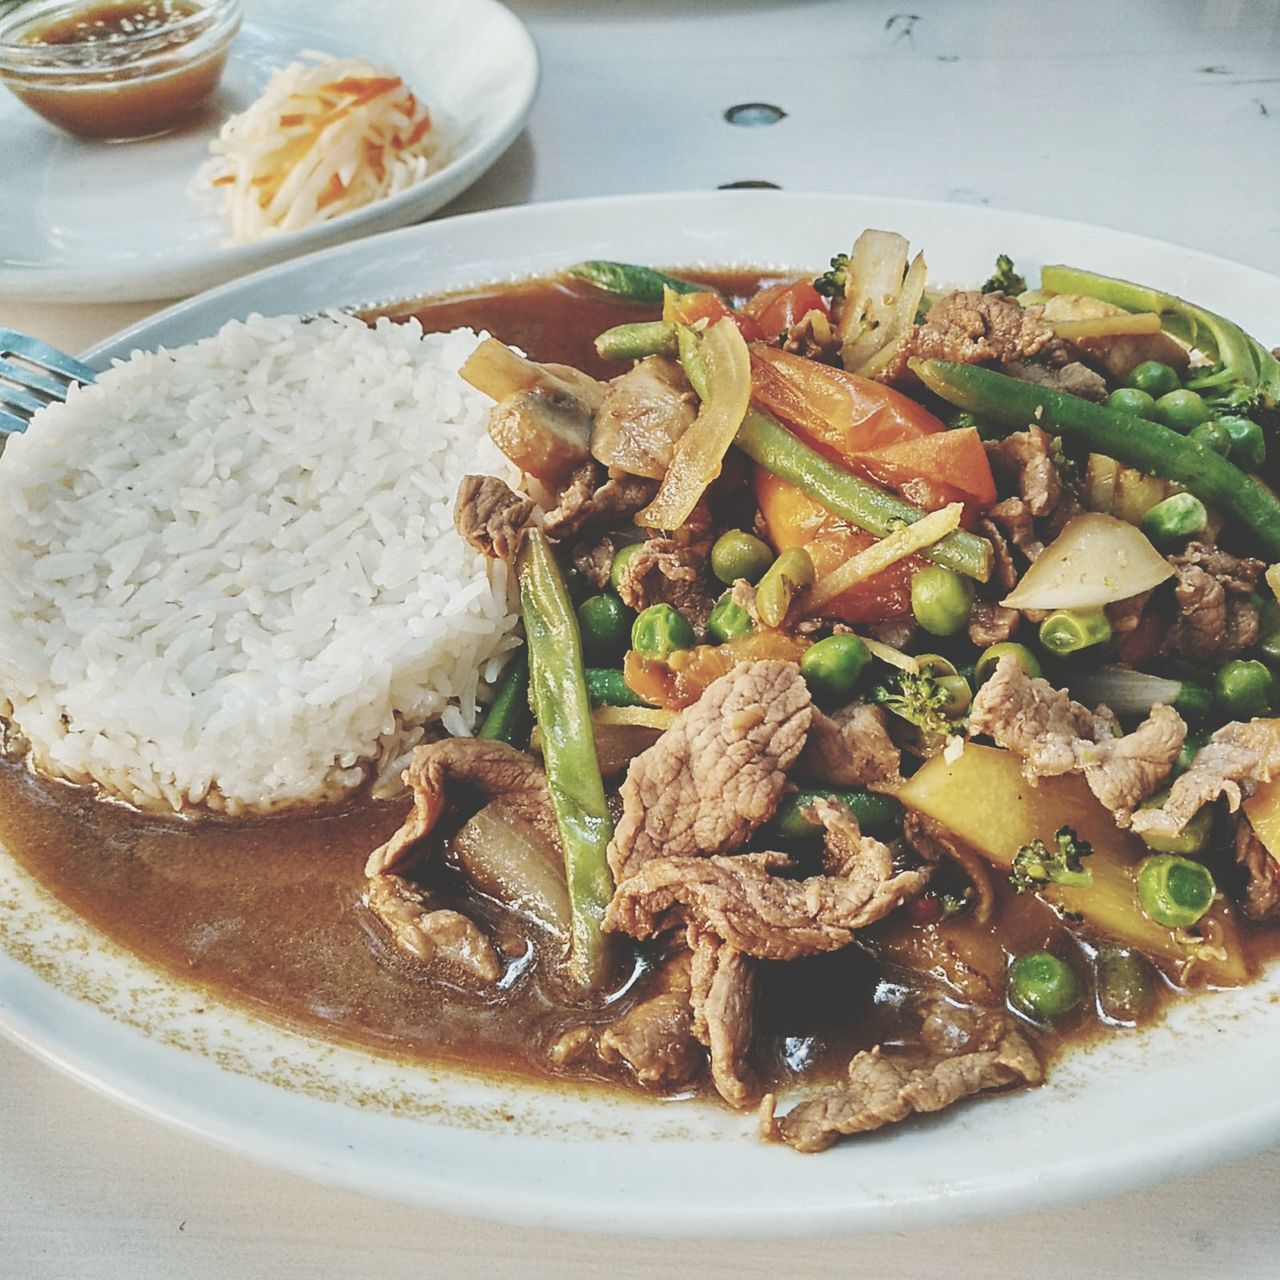 Beef Ginger Asian Rice Sauce Fish Sauce Soja Sauce Tofu Asianfood Streetfood Vietnamese Food Vietnam Food Chinese Food Thai Food Healthy Eating Asian Culture Bean Sprouts Green Beans Carrots Pea Meat! Meat! Meat! Food Onions Healthy Food Sommergefühle Ready-to-eat